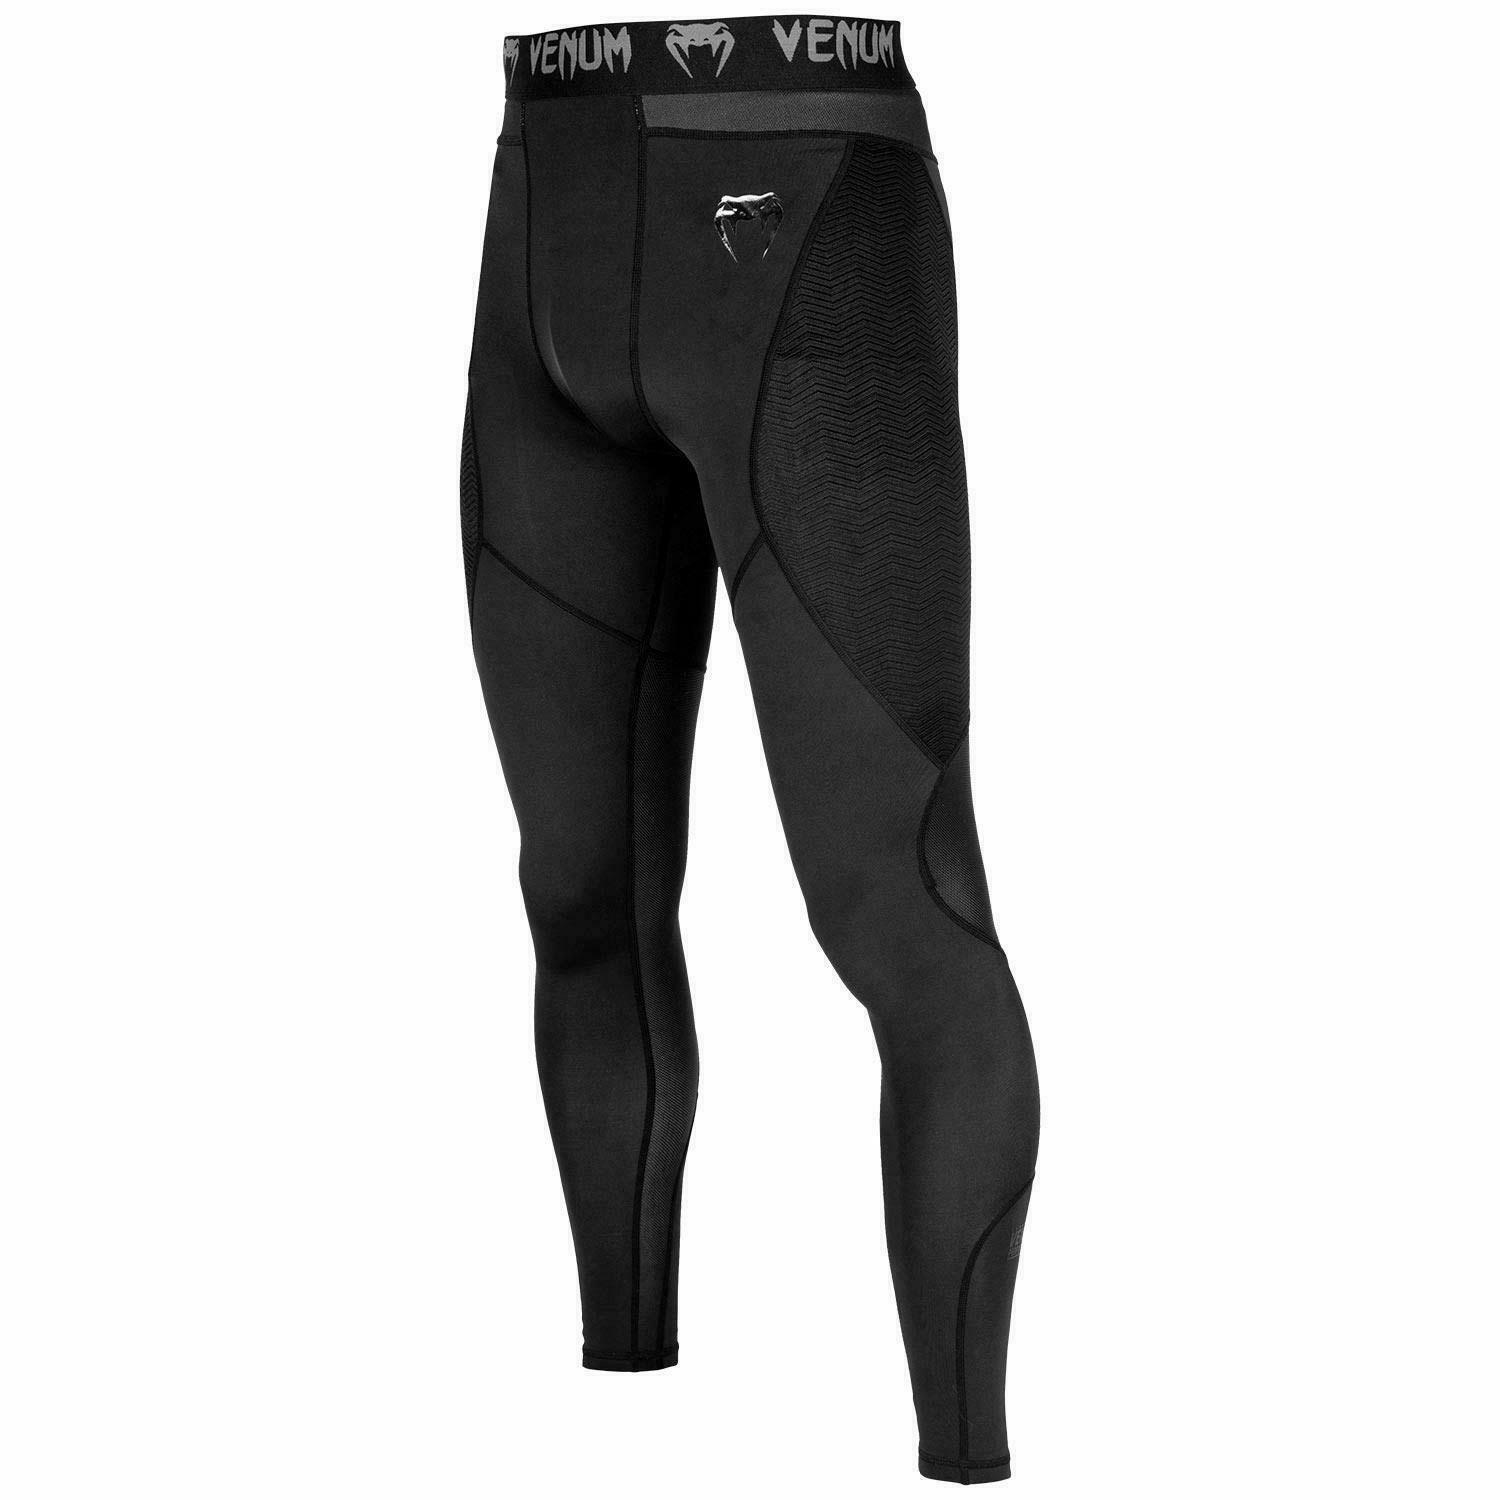 Venum G-Fit Compression hose MMA Spats BJJ No-Gi Grappling Tights Gym Crossfit